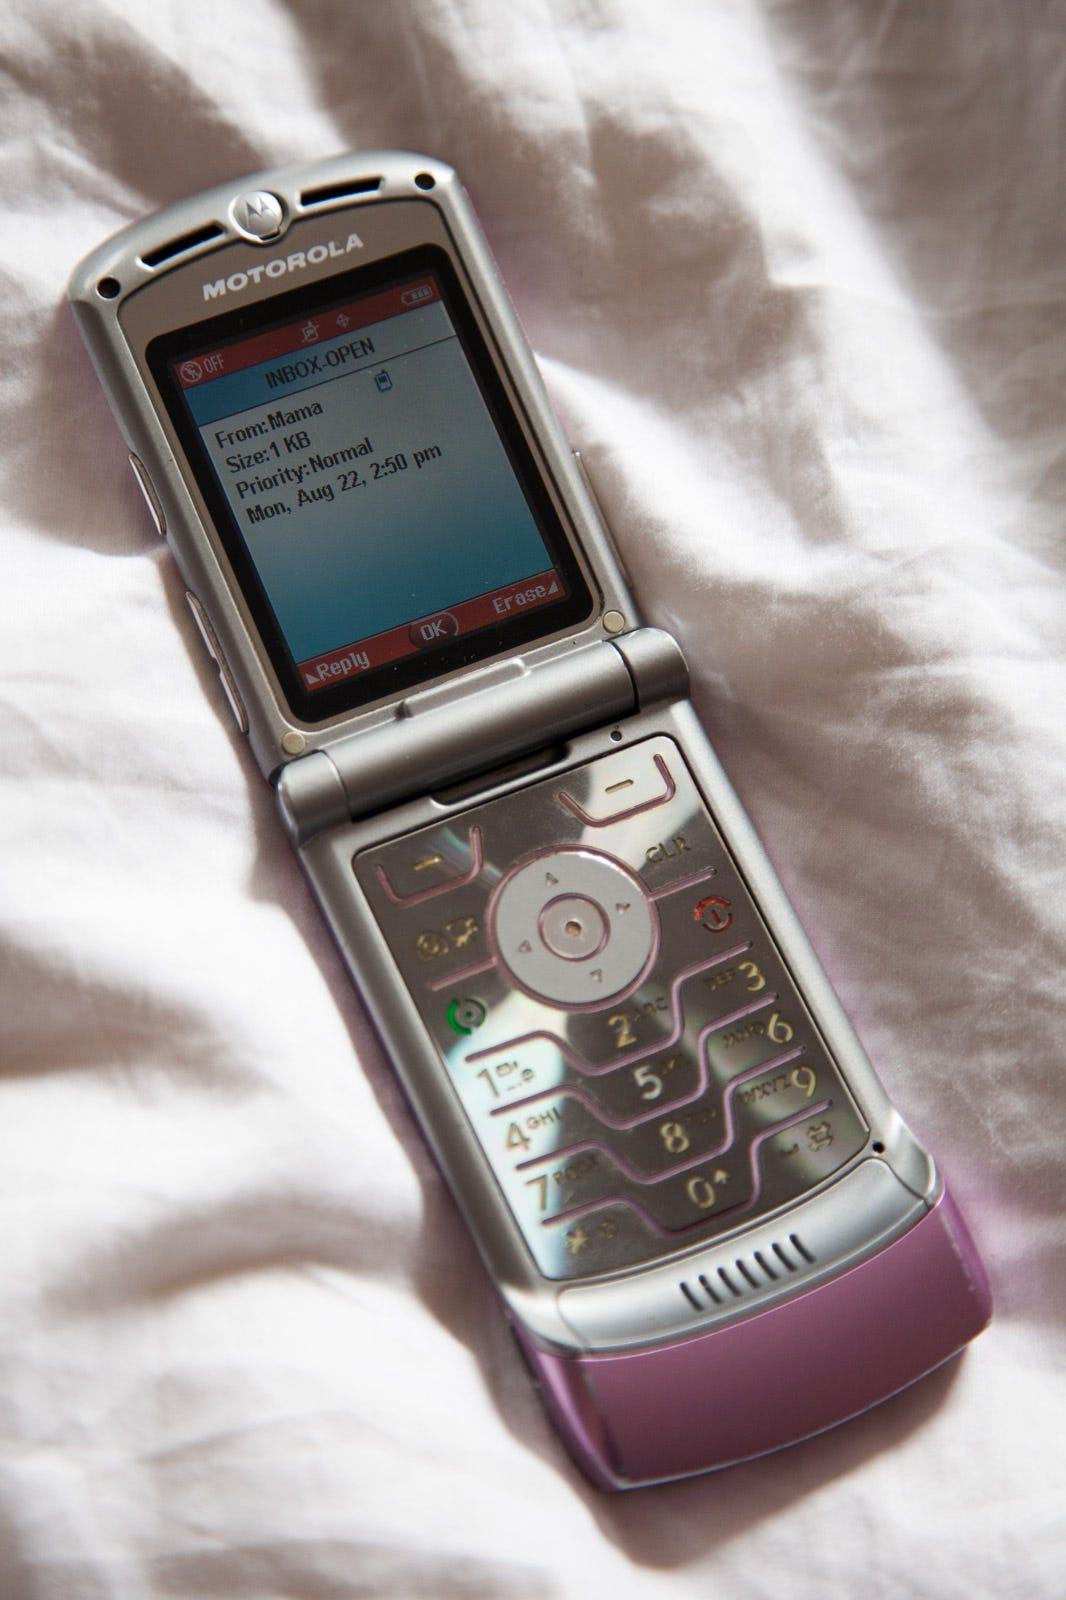 Using A Flip Phone In 2016 - Not Using Smart Phone